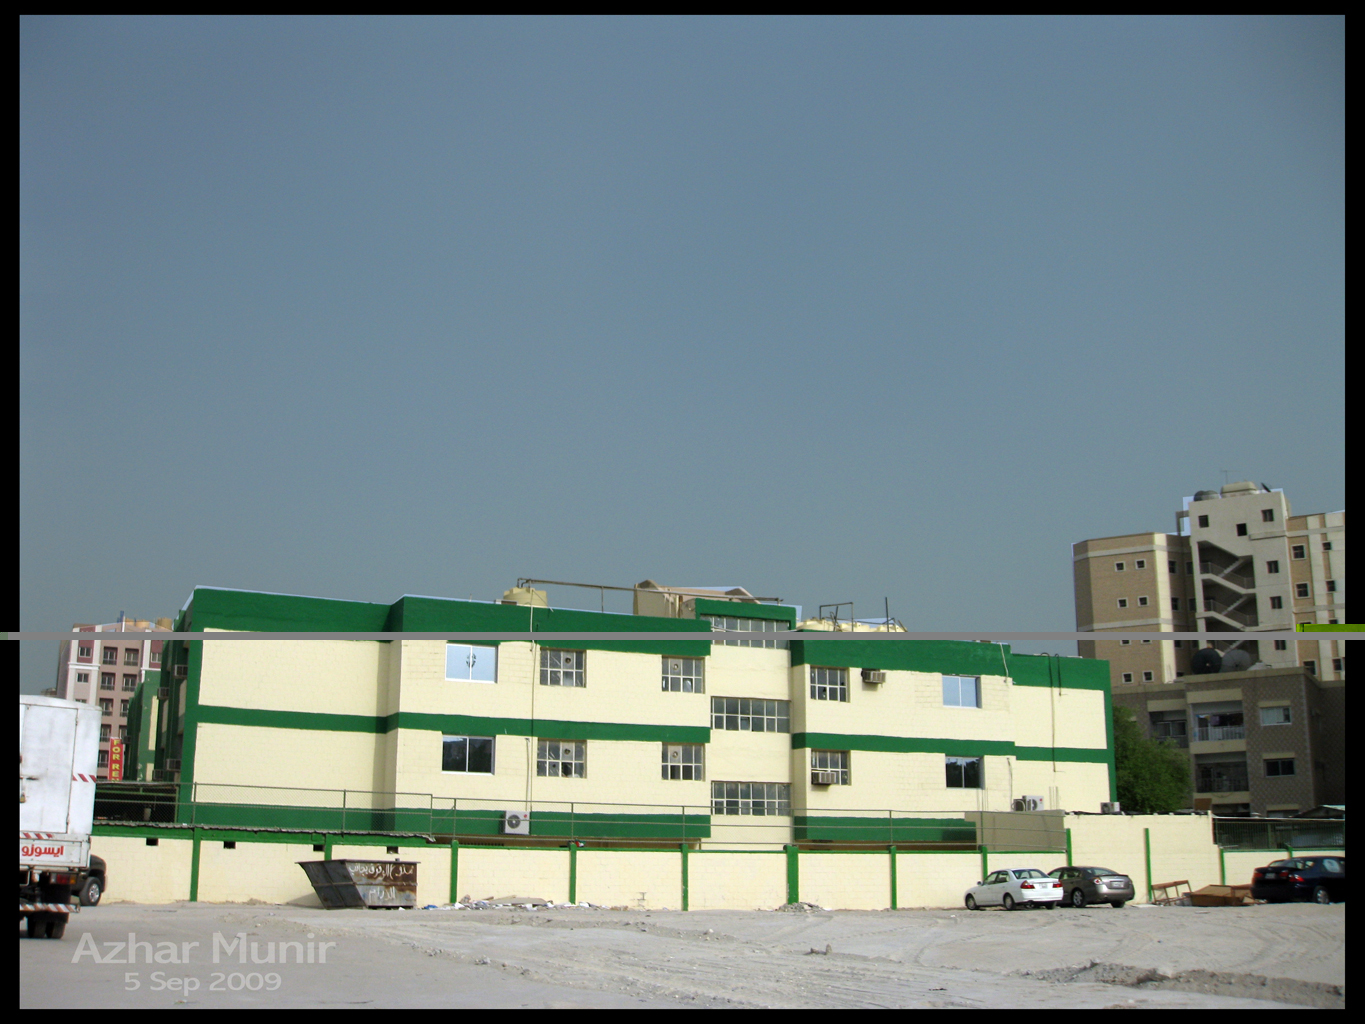 Rumasiya pakistan english school and college, Salmiya Kuwait